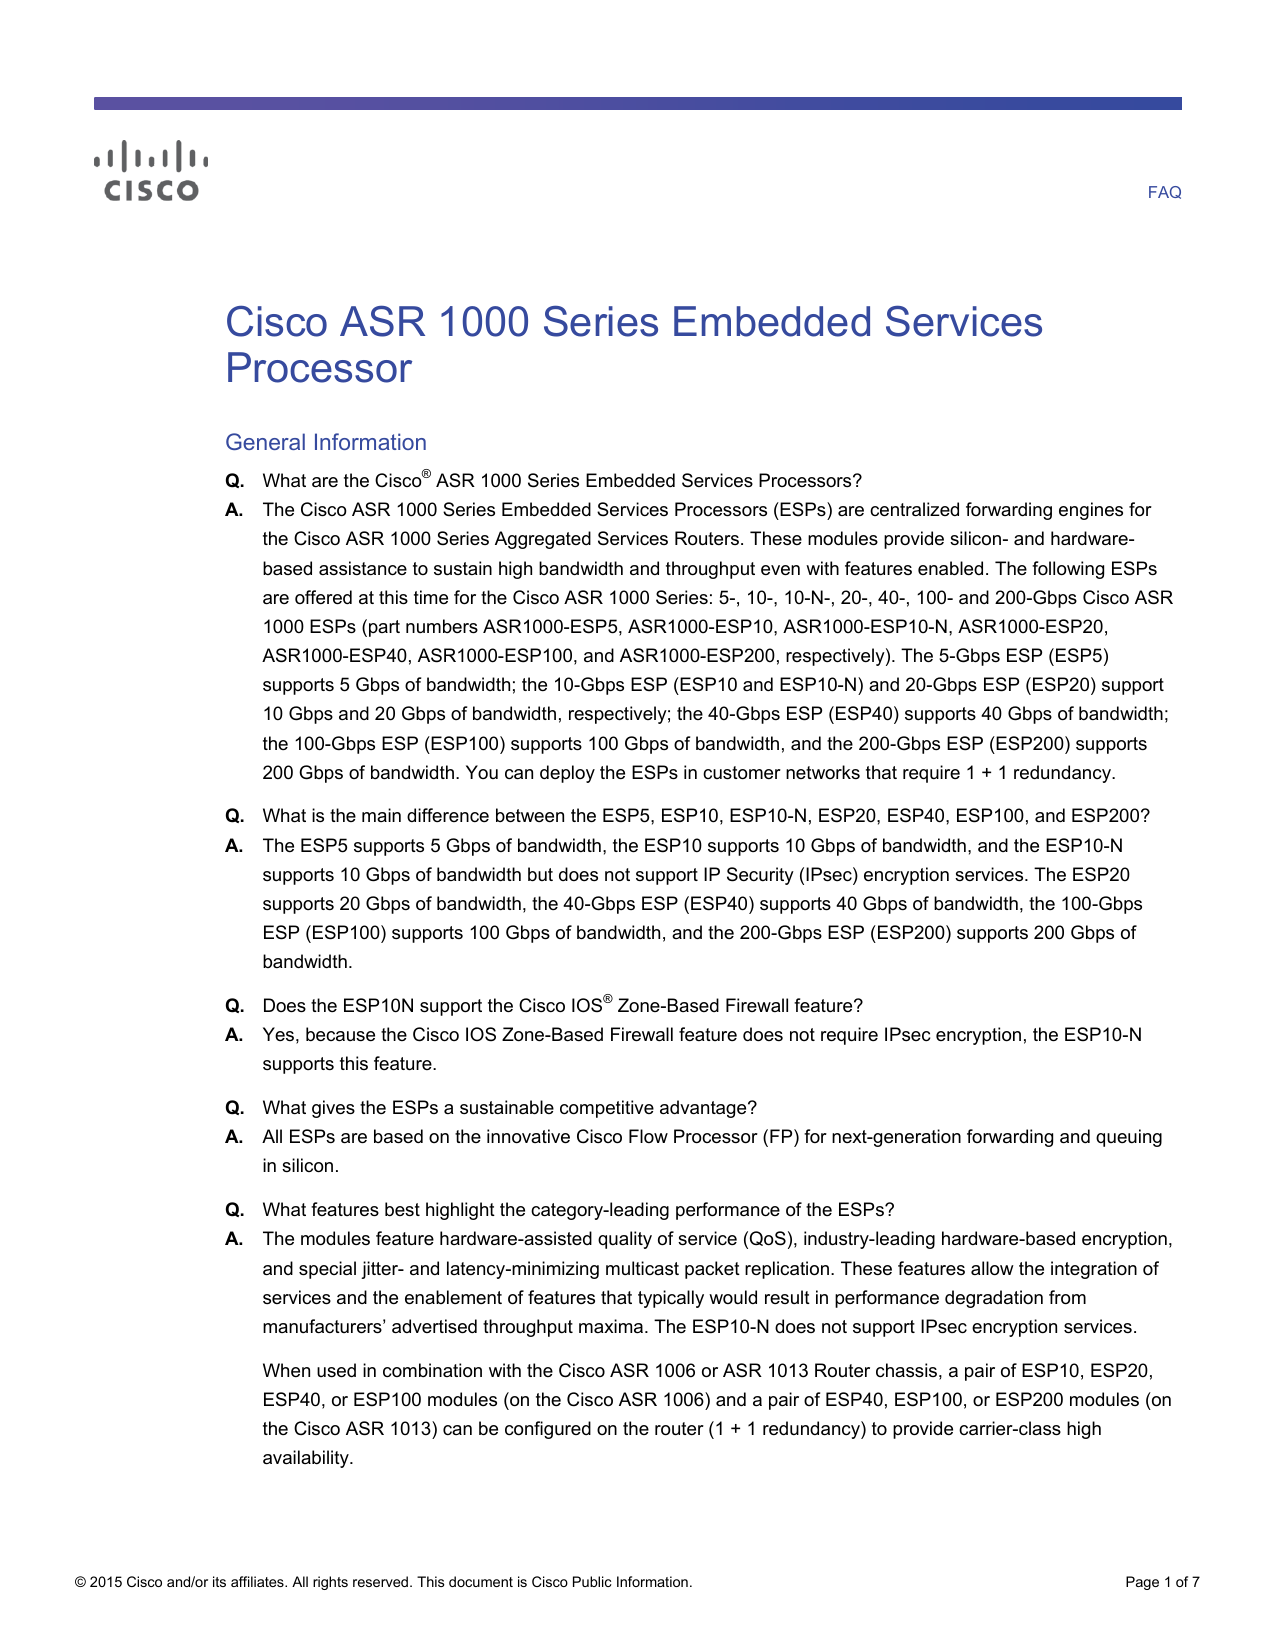 Cisco ASR 1000 Series Embedded Services Processor General